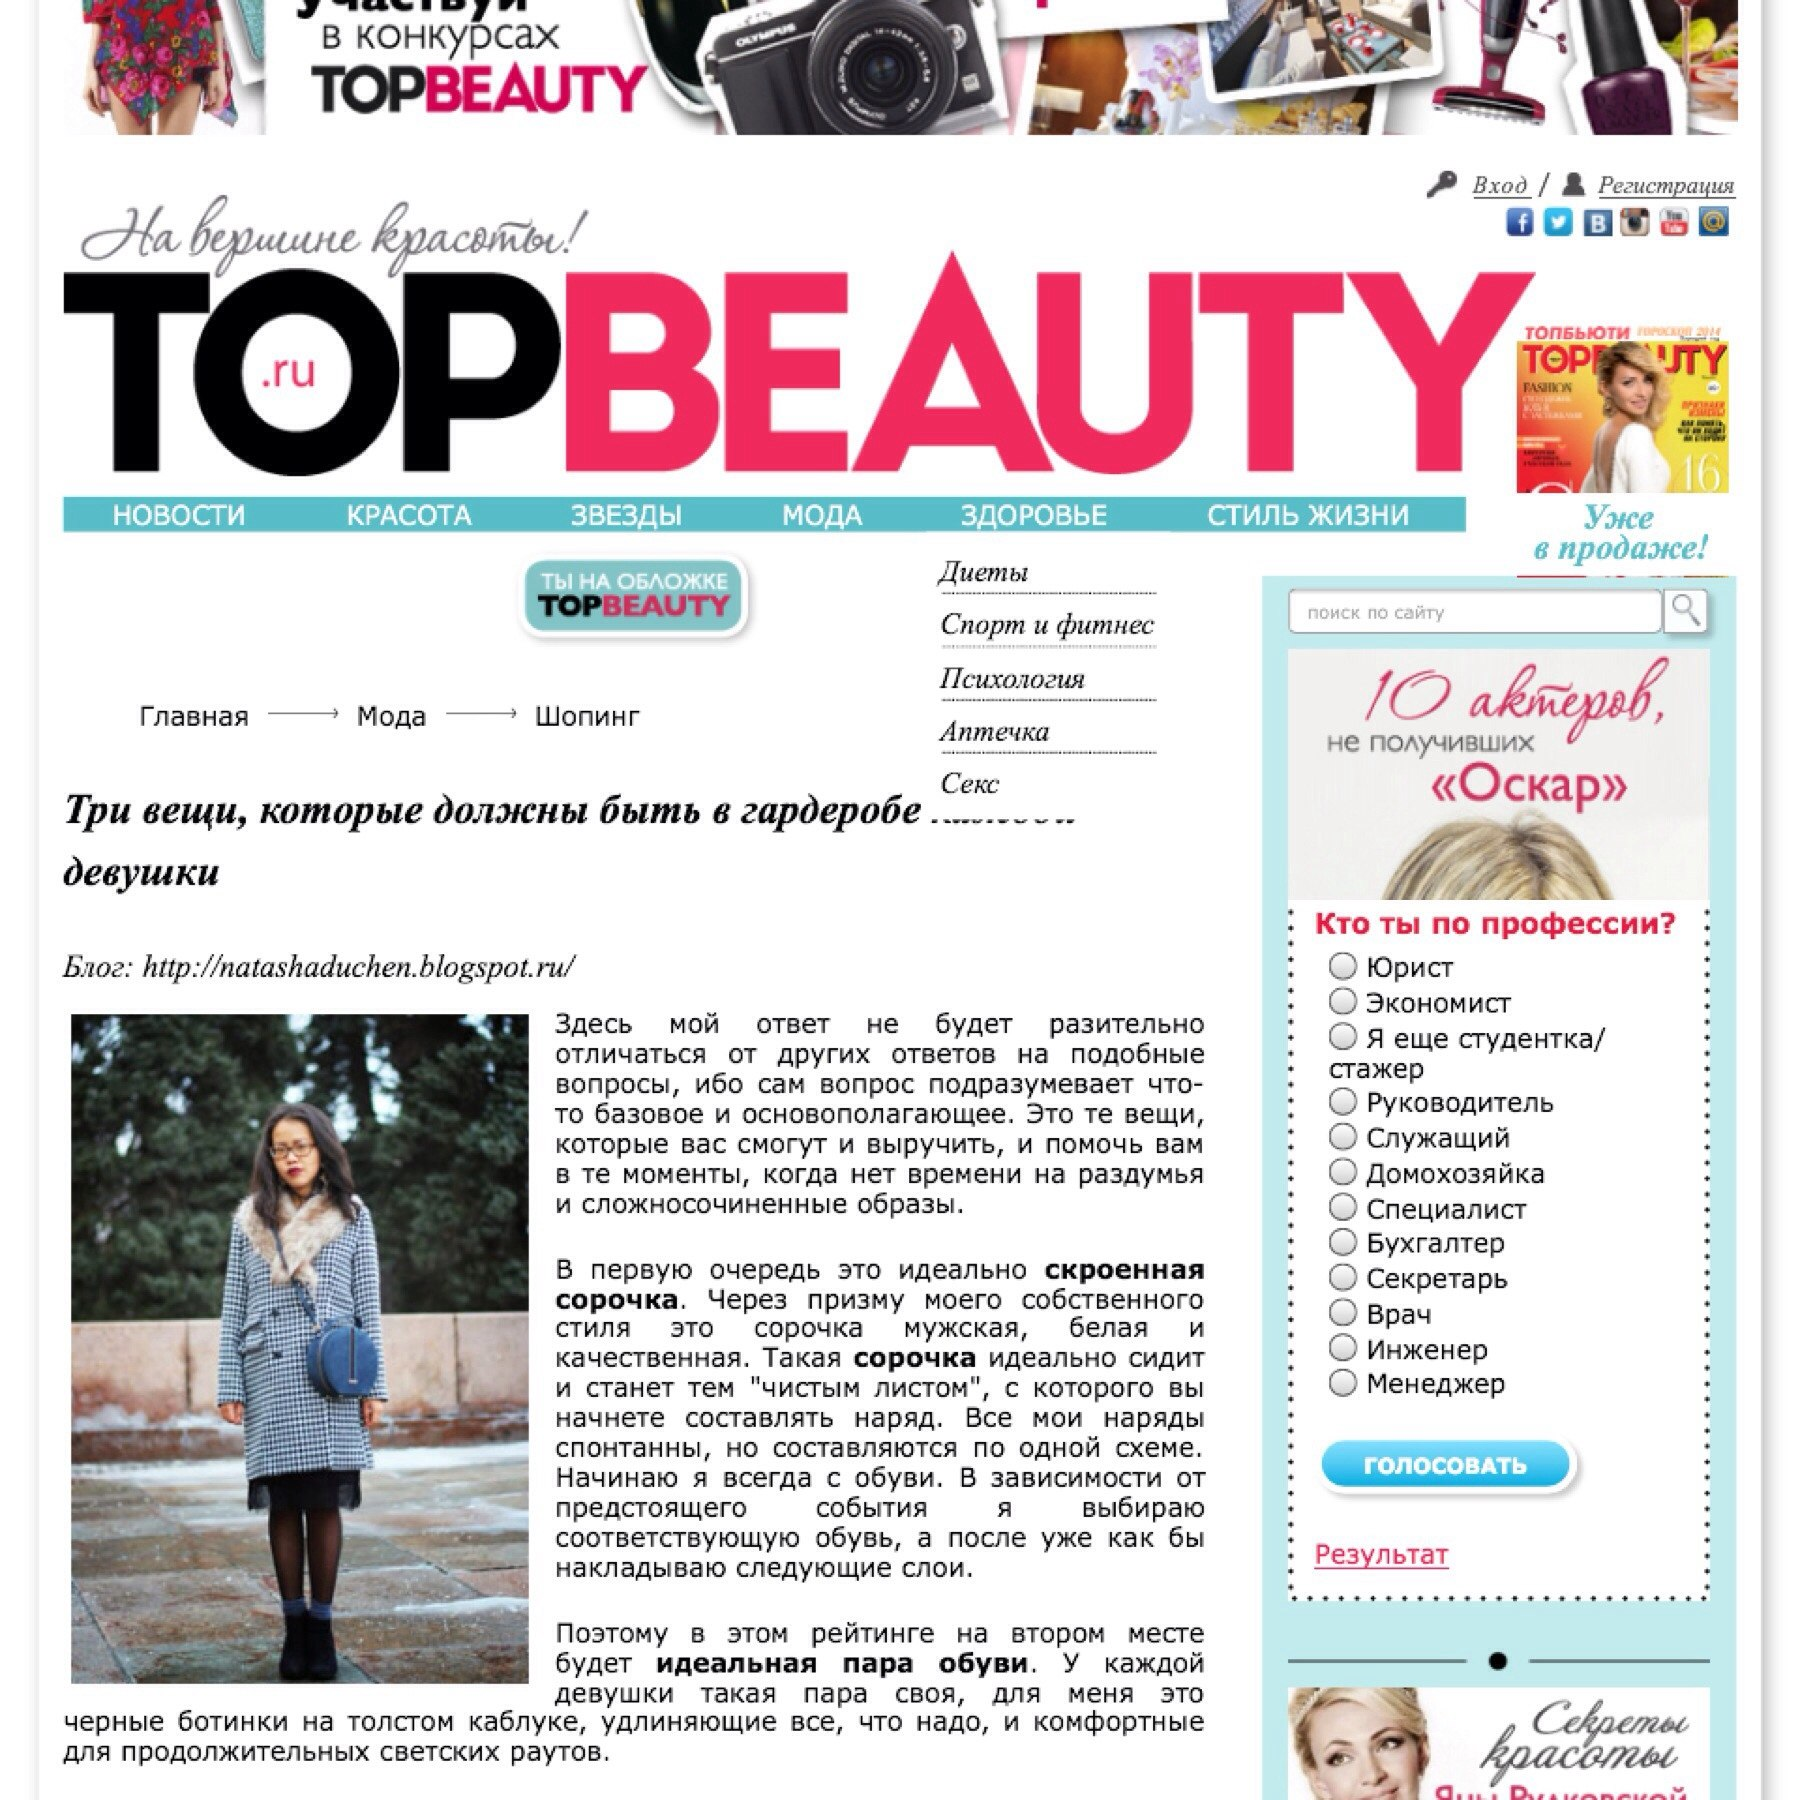 TOPBEAUTY